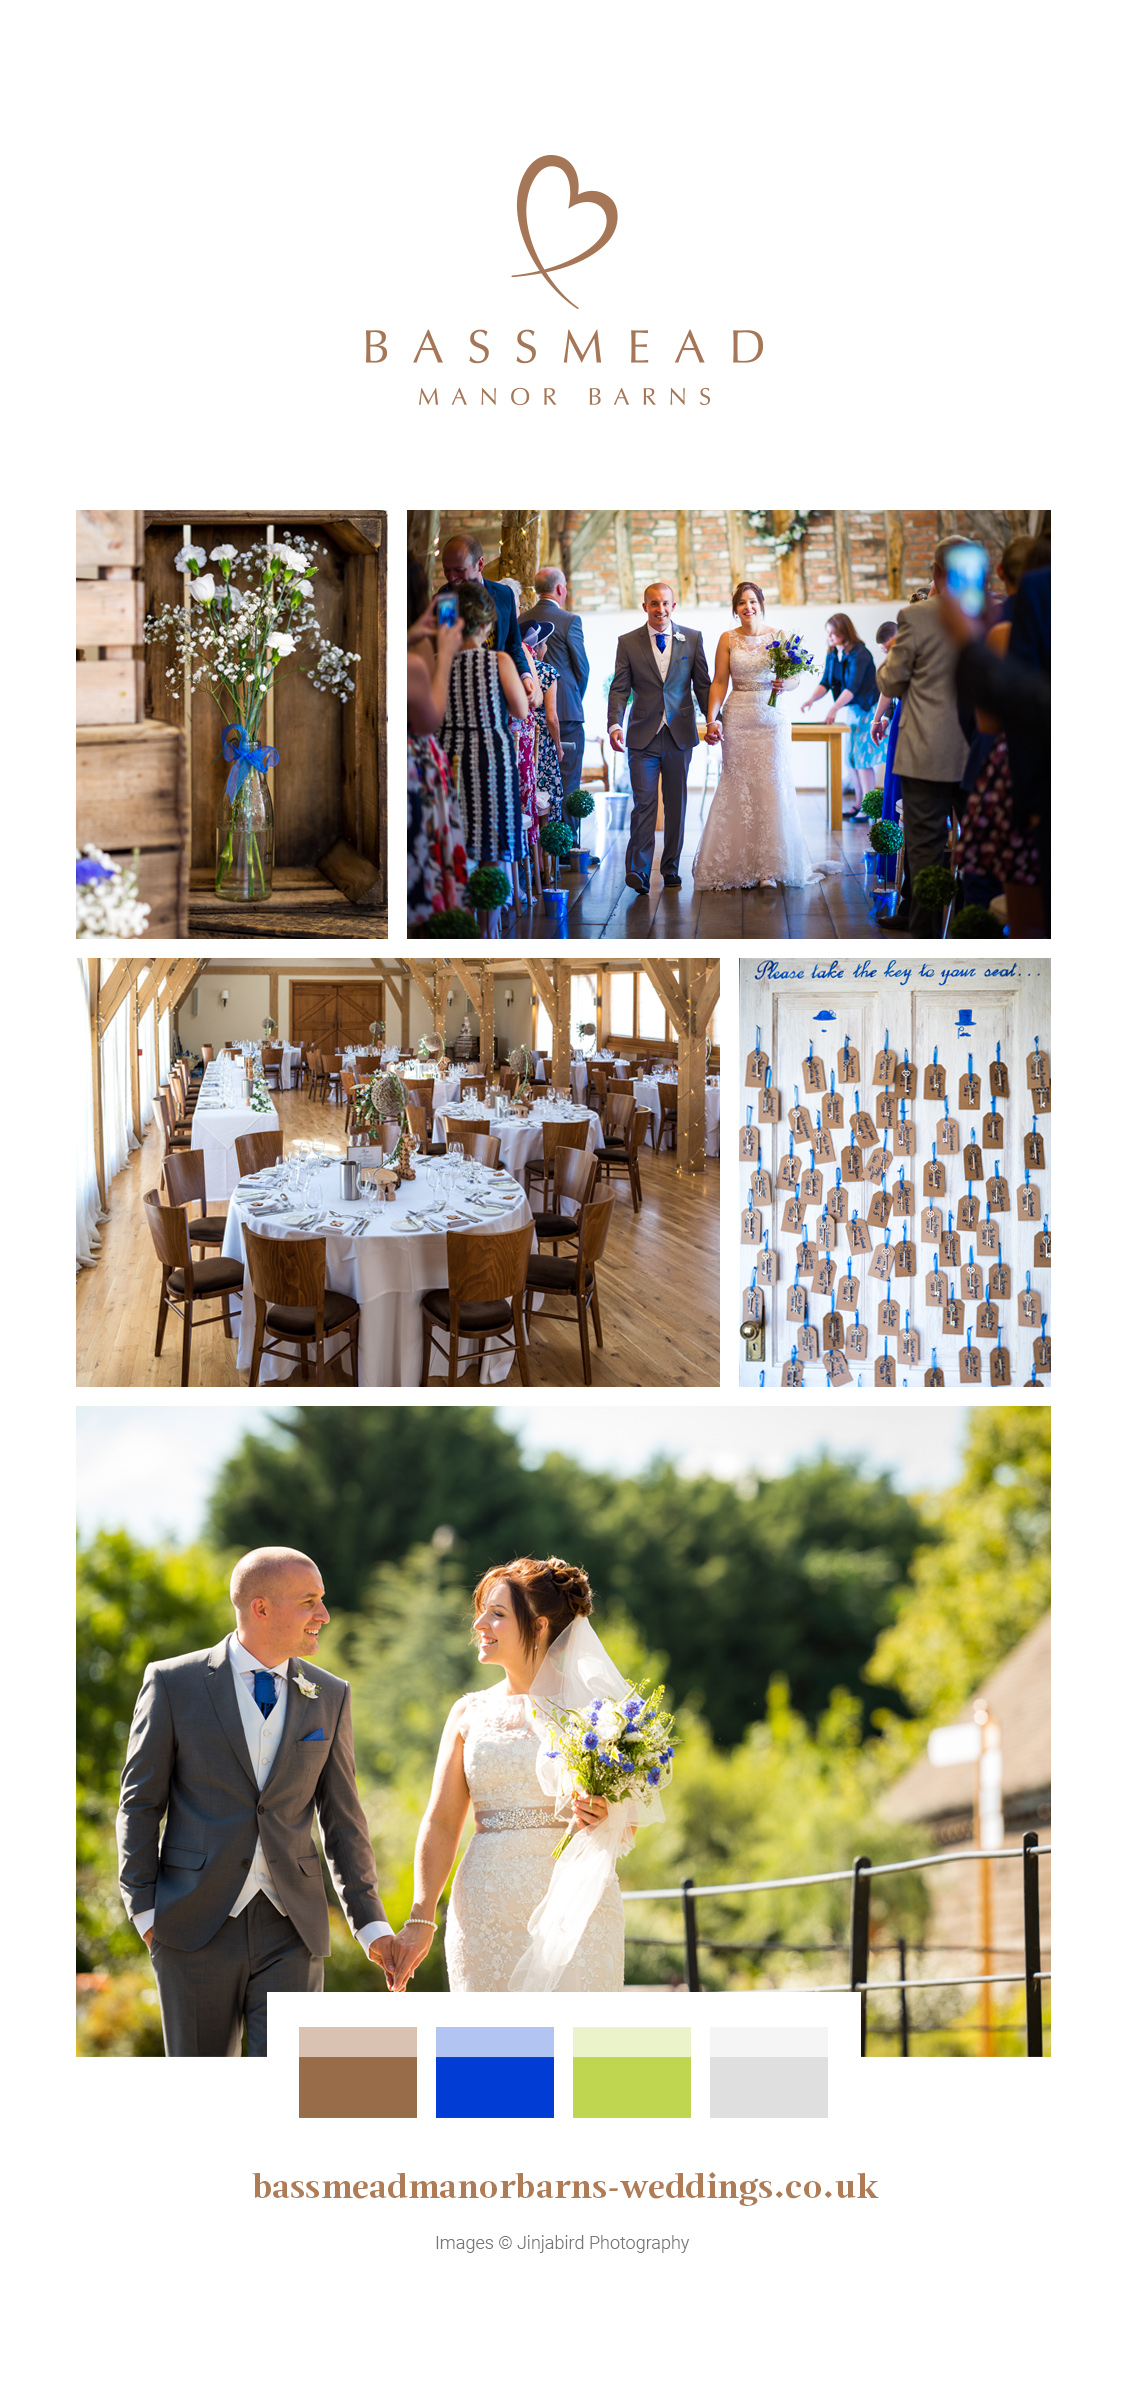 Lauren and Brad's real life wedding at Bassmead Manor Barns